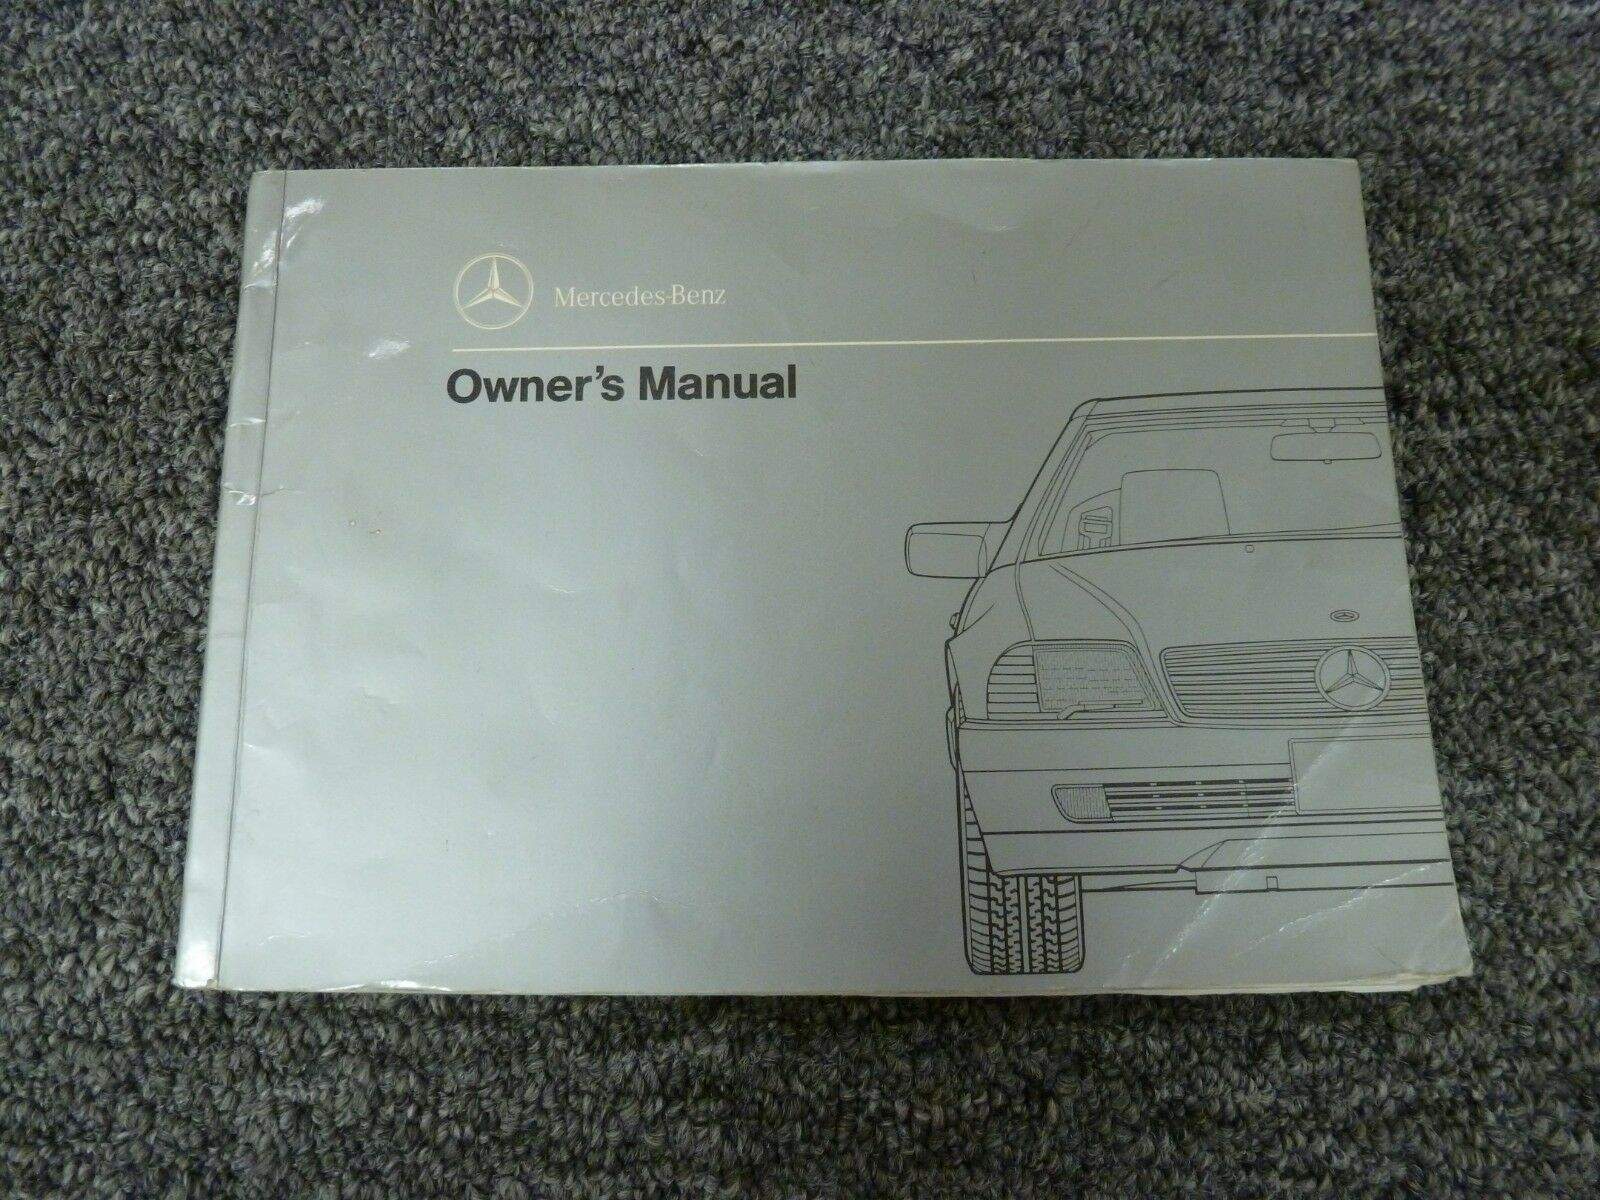 1990 Mercedes Benz 300 SL Congreenible & 500 SL Coupe Owner Manual User Guide